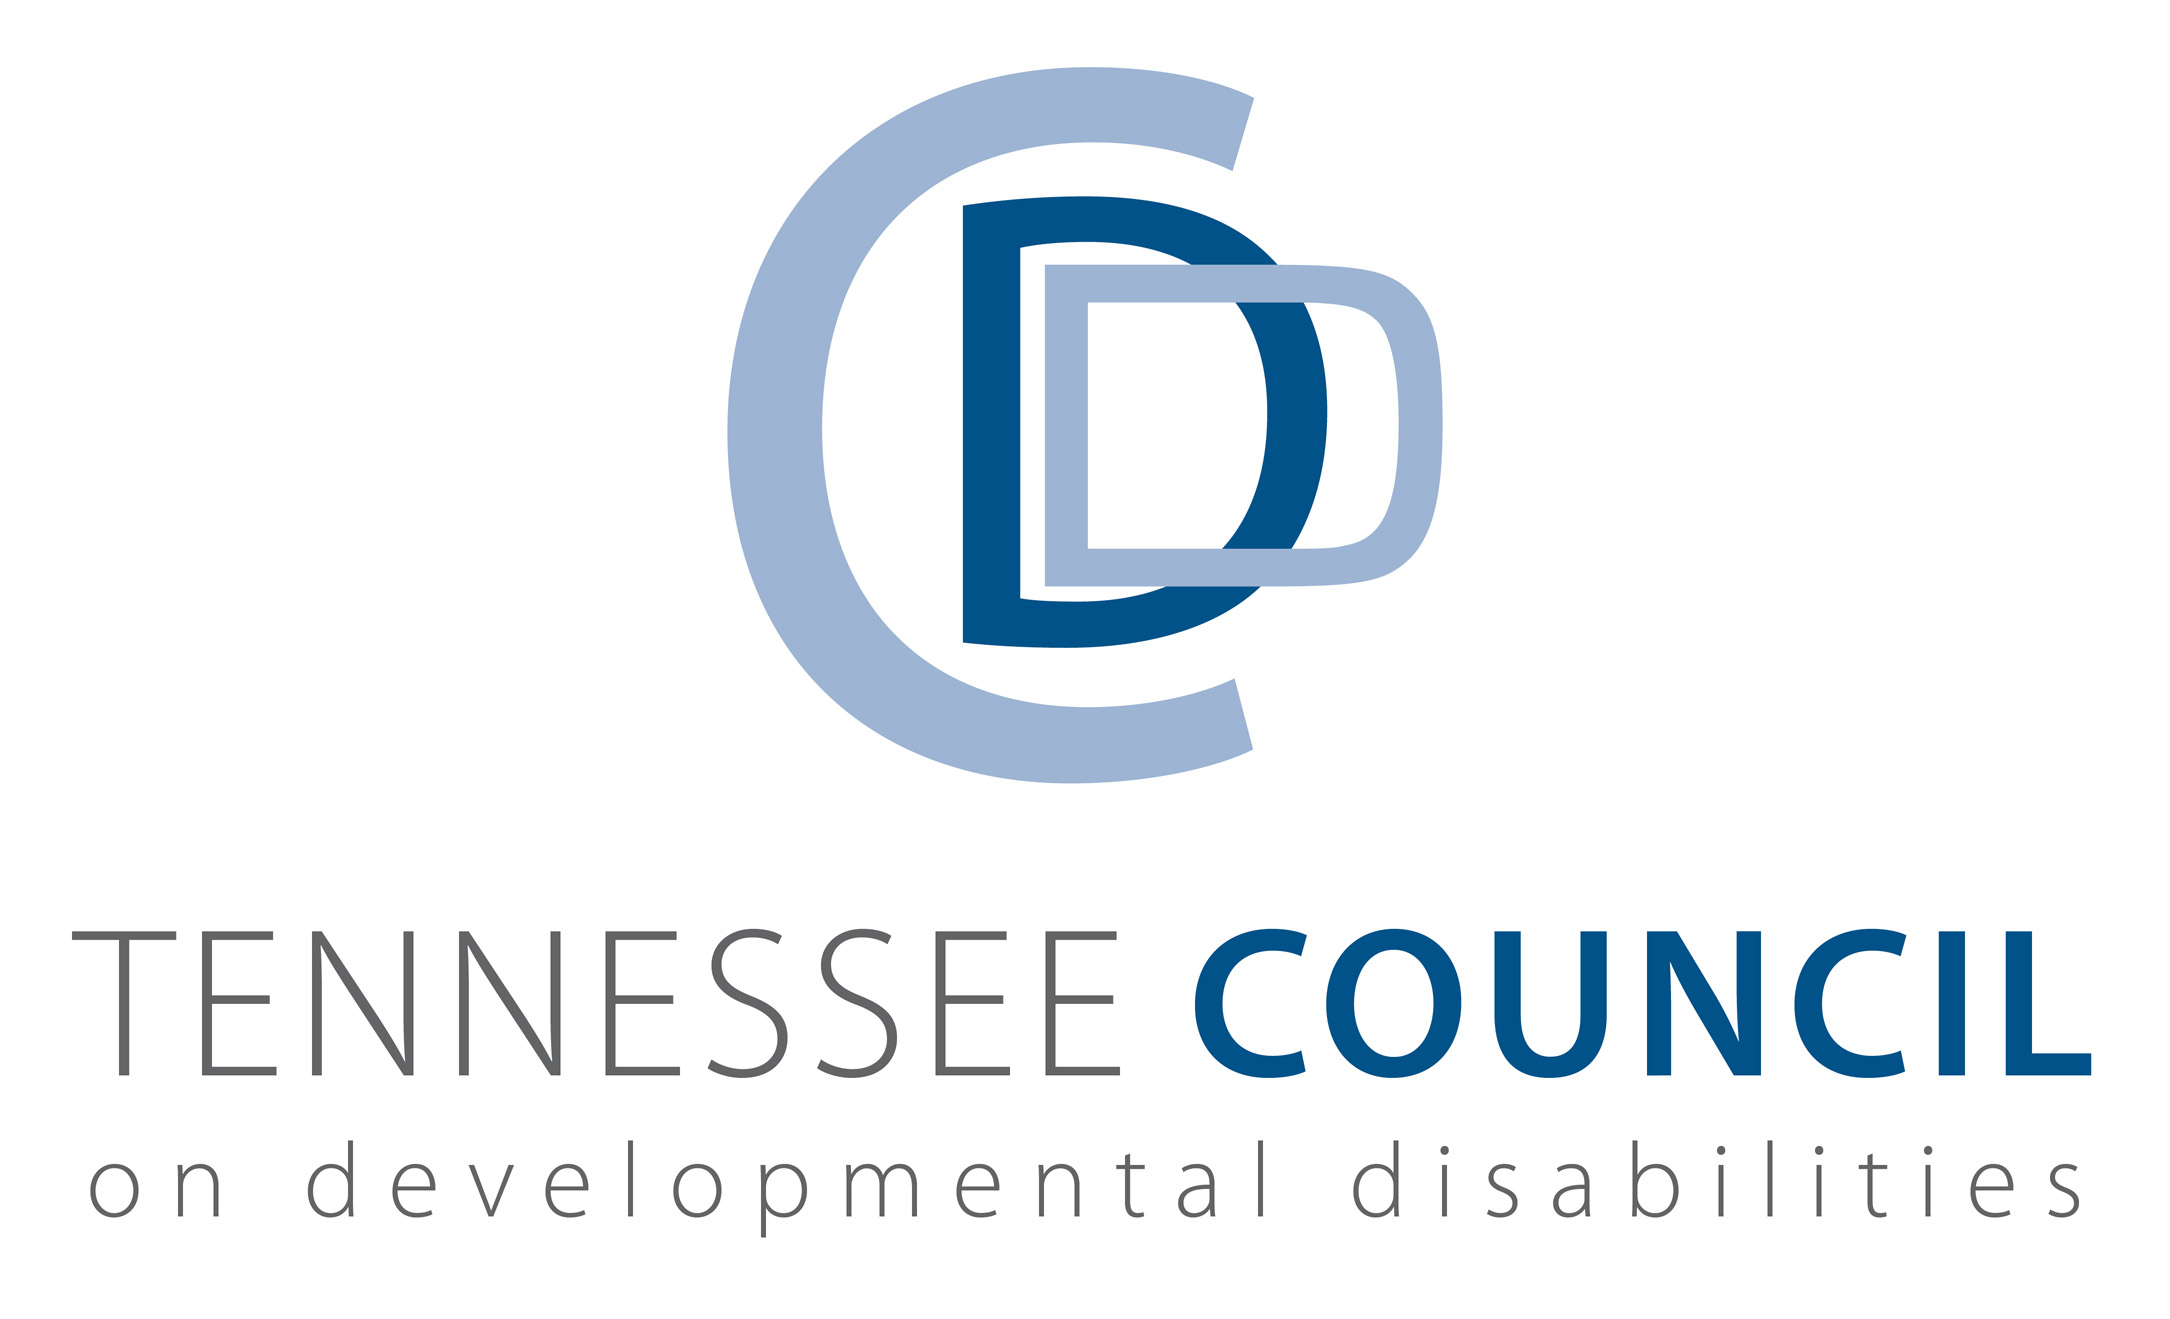 The Tennessee Council on Developmental Disabilities is encouraging people with disabilities, families of people with disabilities, and disability non-profit organizations to apply for new, one-time grants through its scholarship fund.